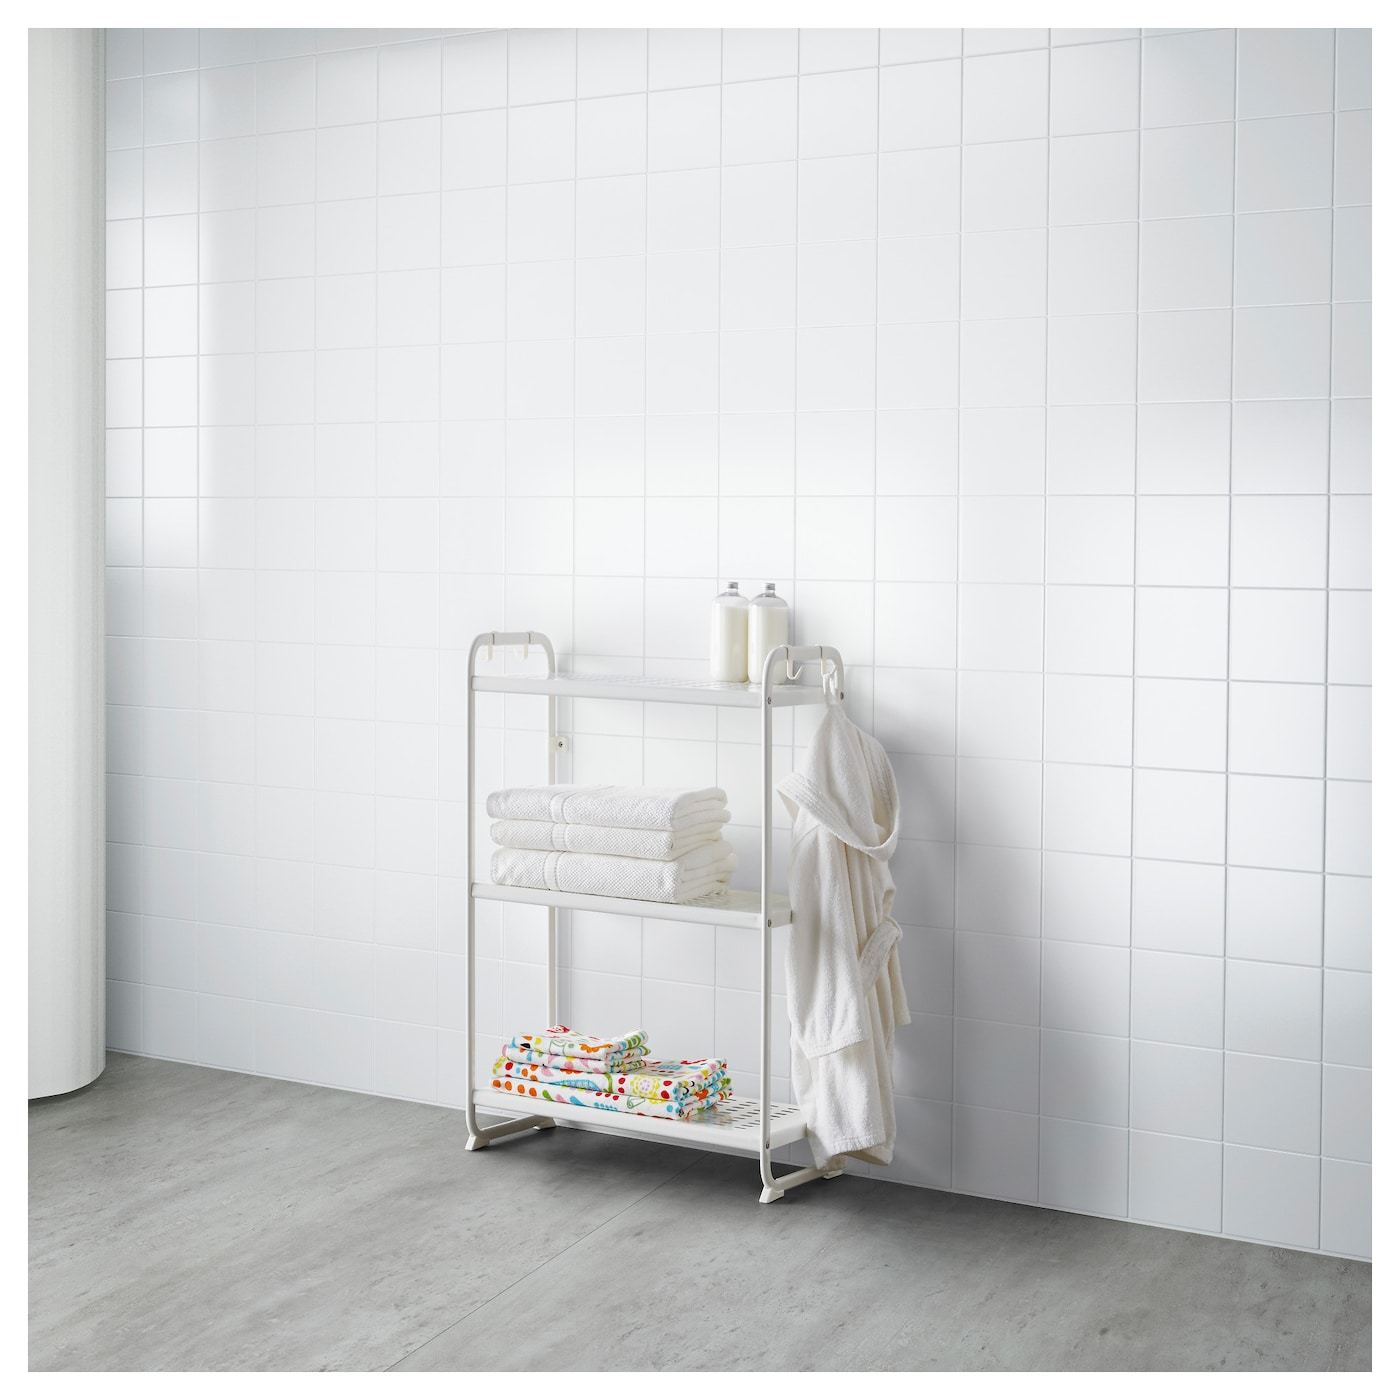 mulig shelving unit white 58 x 34 x 90 cm ikea. Black Bedroom Furniture Sets. Home Design Ideas